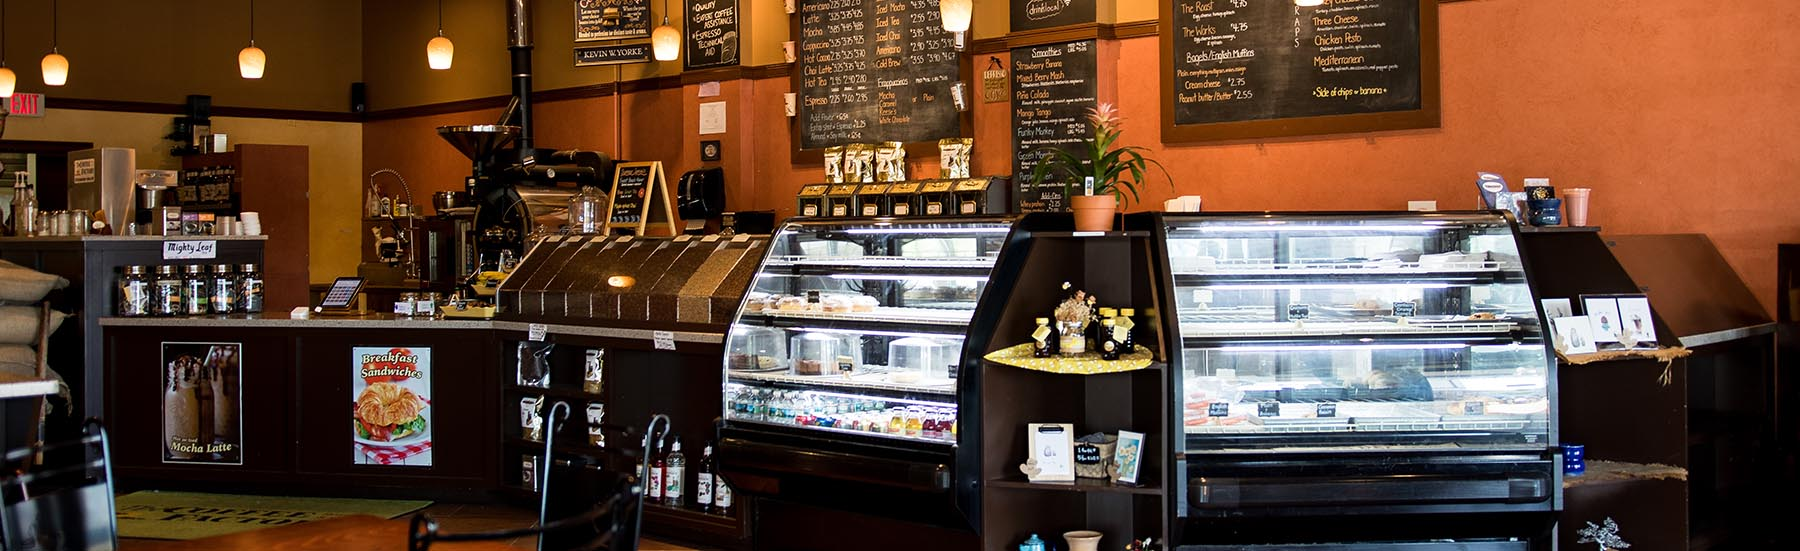 Derry Nh Location Menu Ordering The Coffee Factory